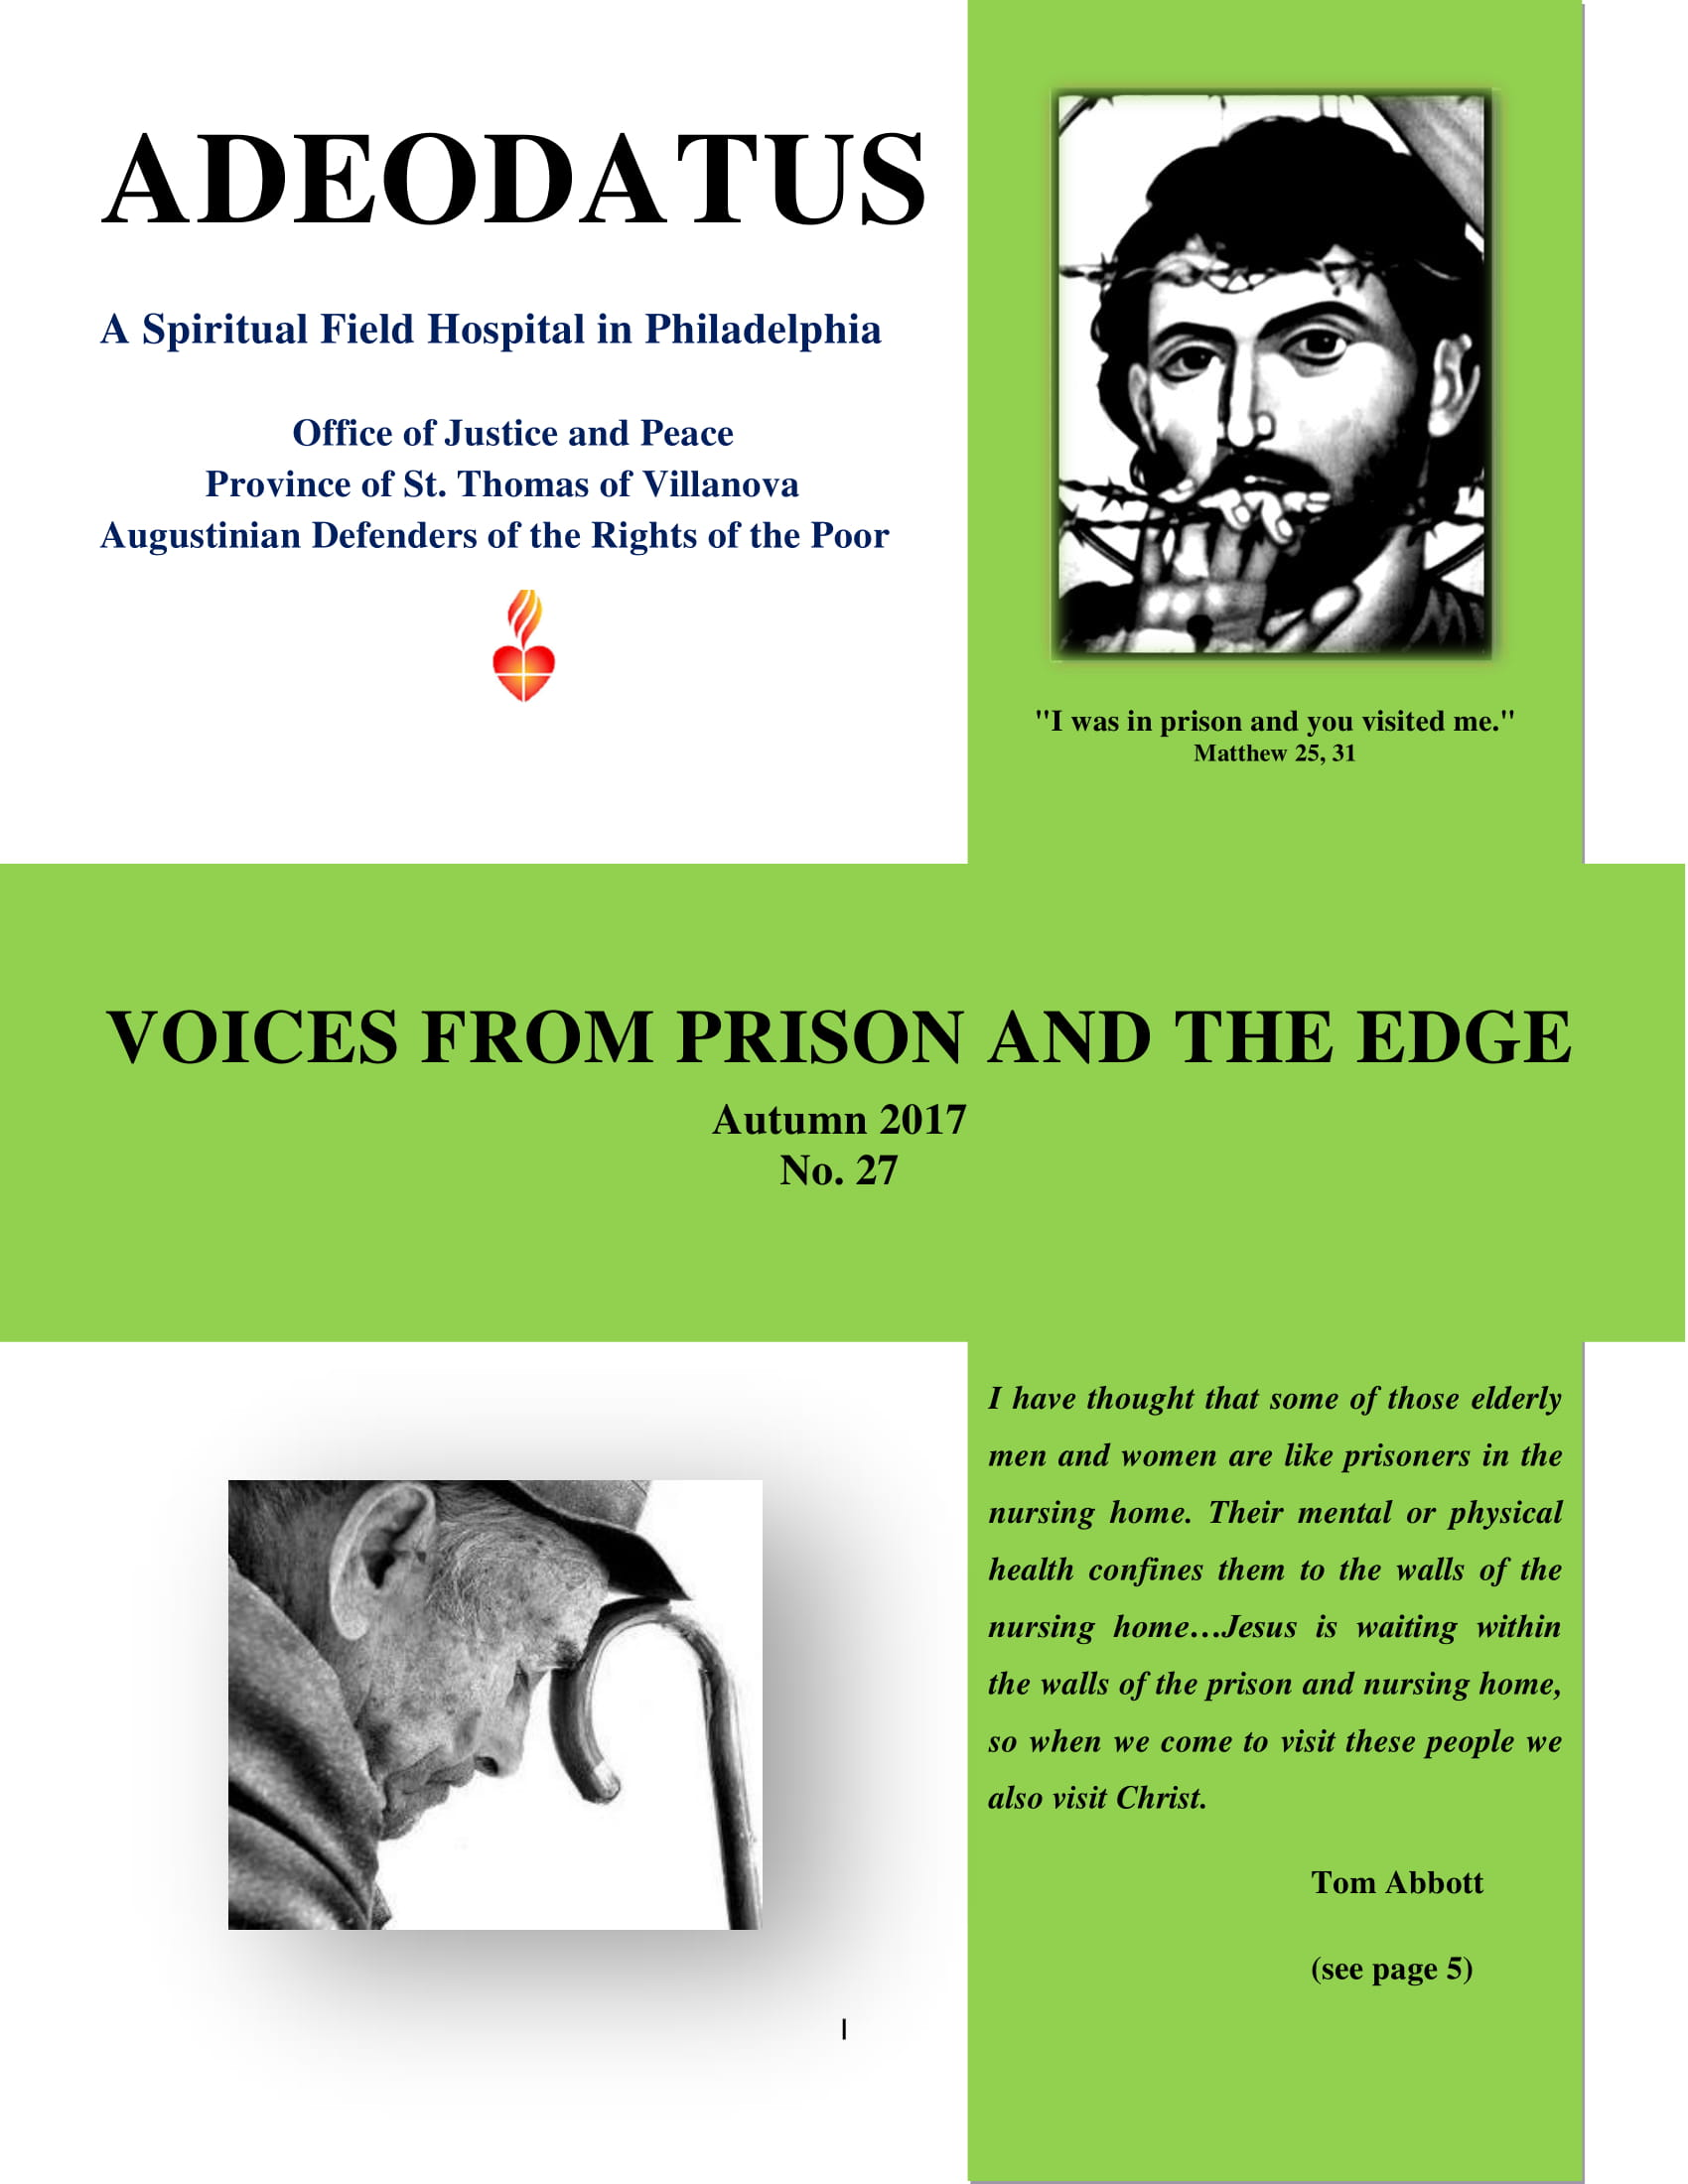 Voices From Prison 27-1.jpg